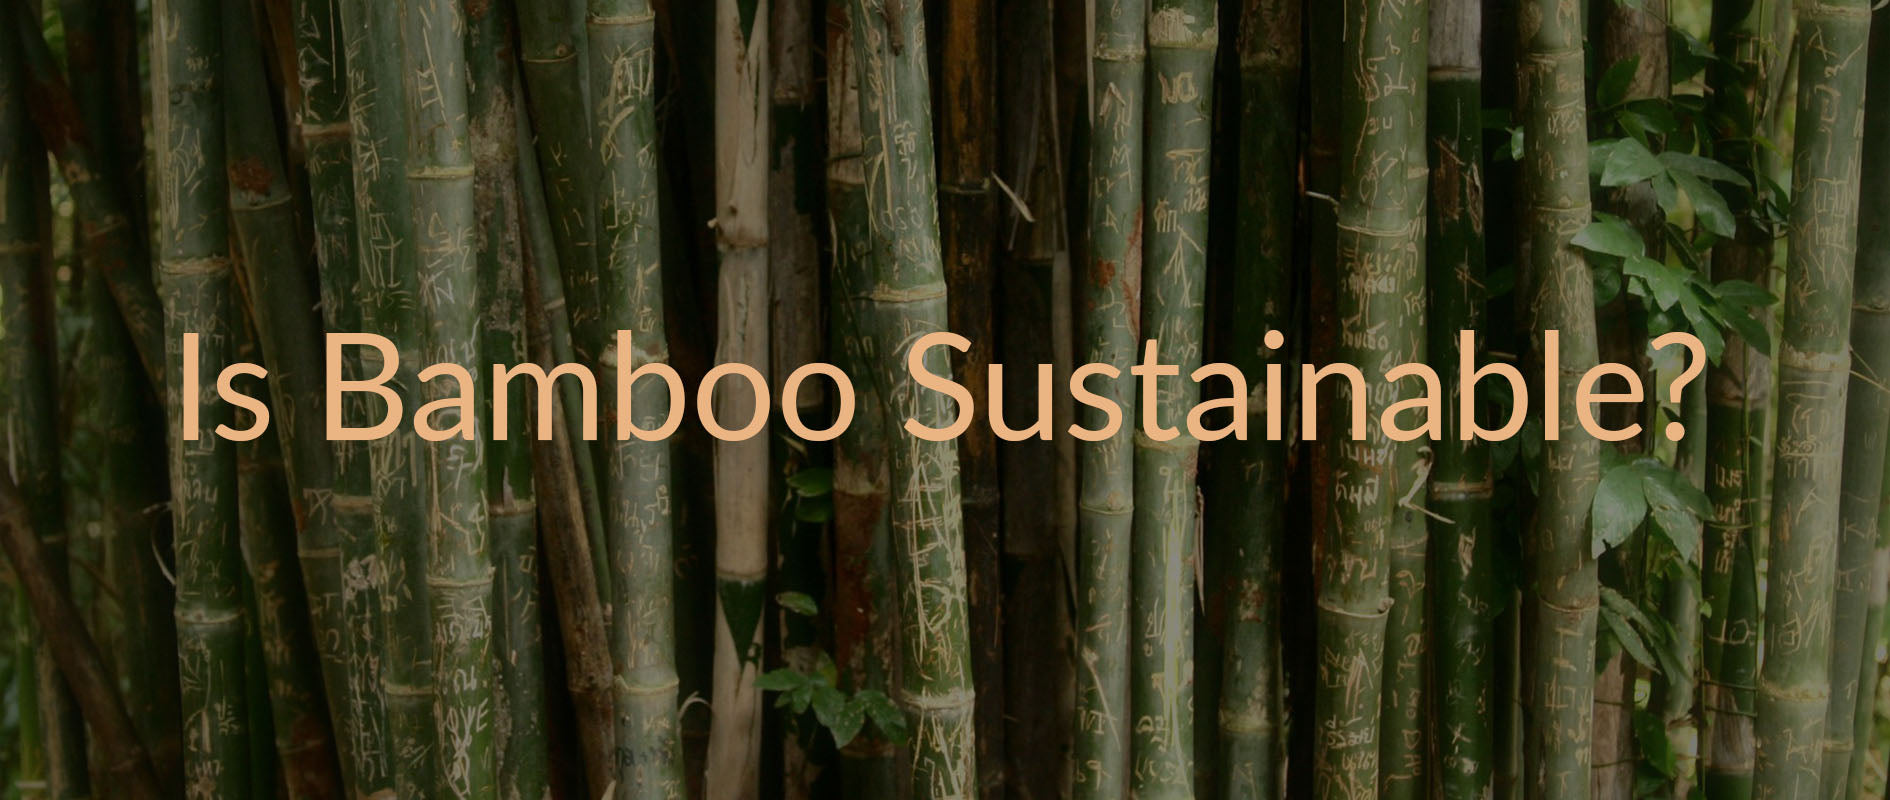 Is Bamboo Sustainable?